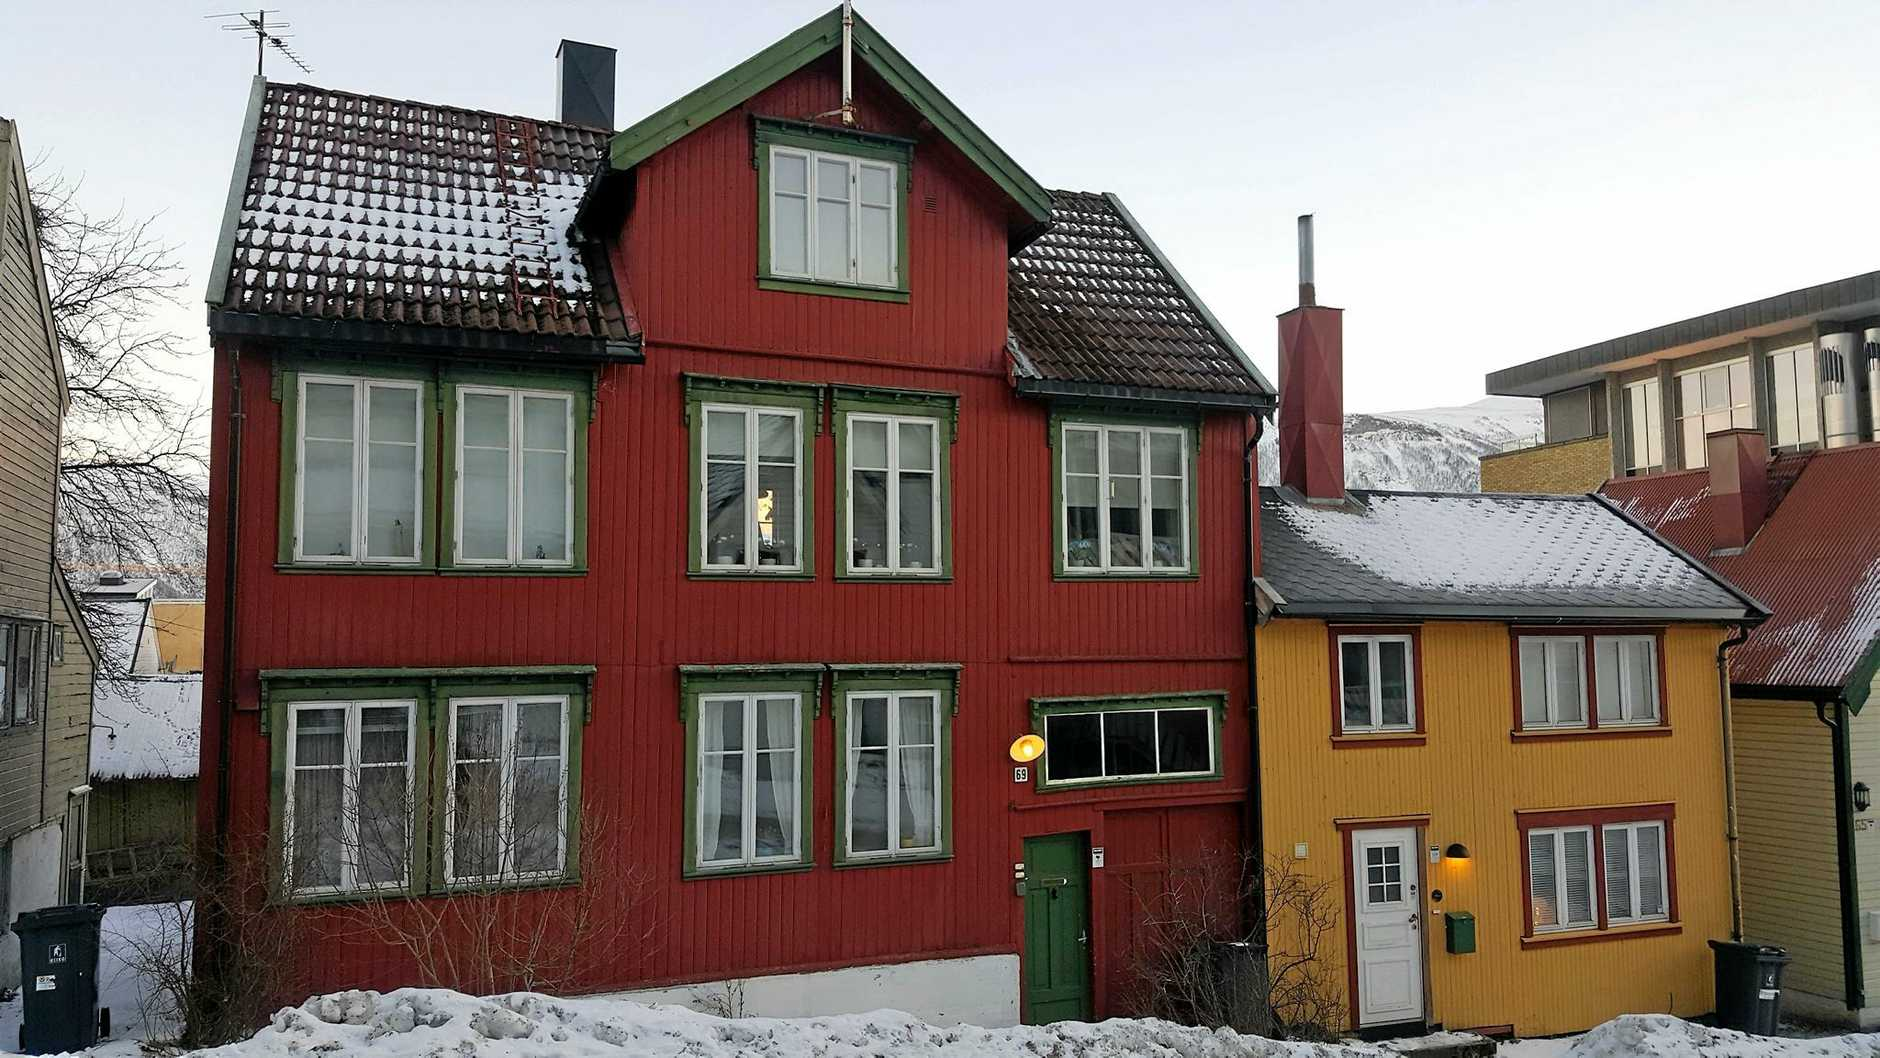 The Red Old House in Tromso.